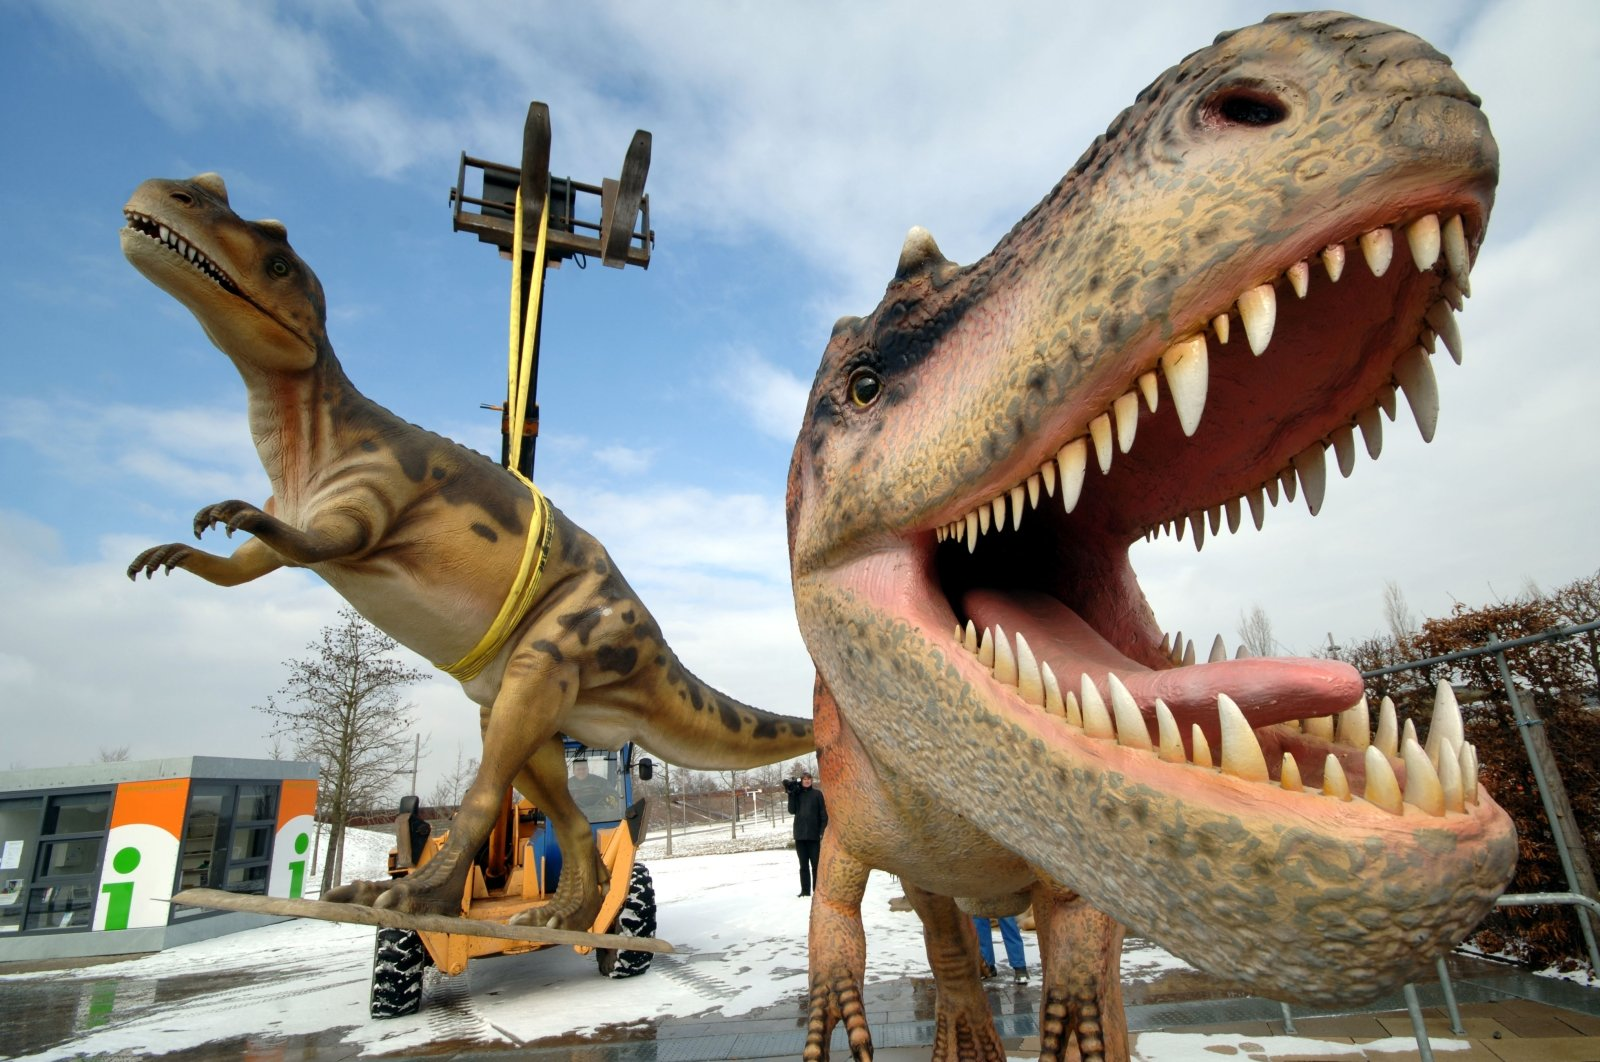 Life-sized Tyrannosaurus rex models are unloaded for a dinosaur exhibition in Potsdam, Germany, March 7, 2006. (AP Photo)